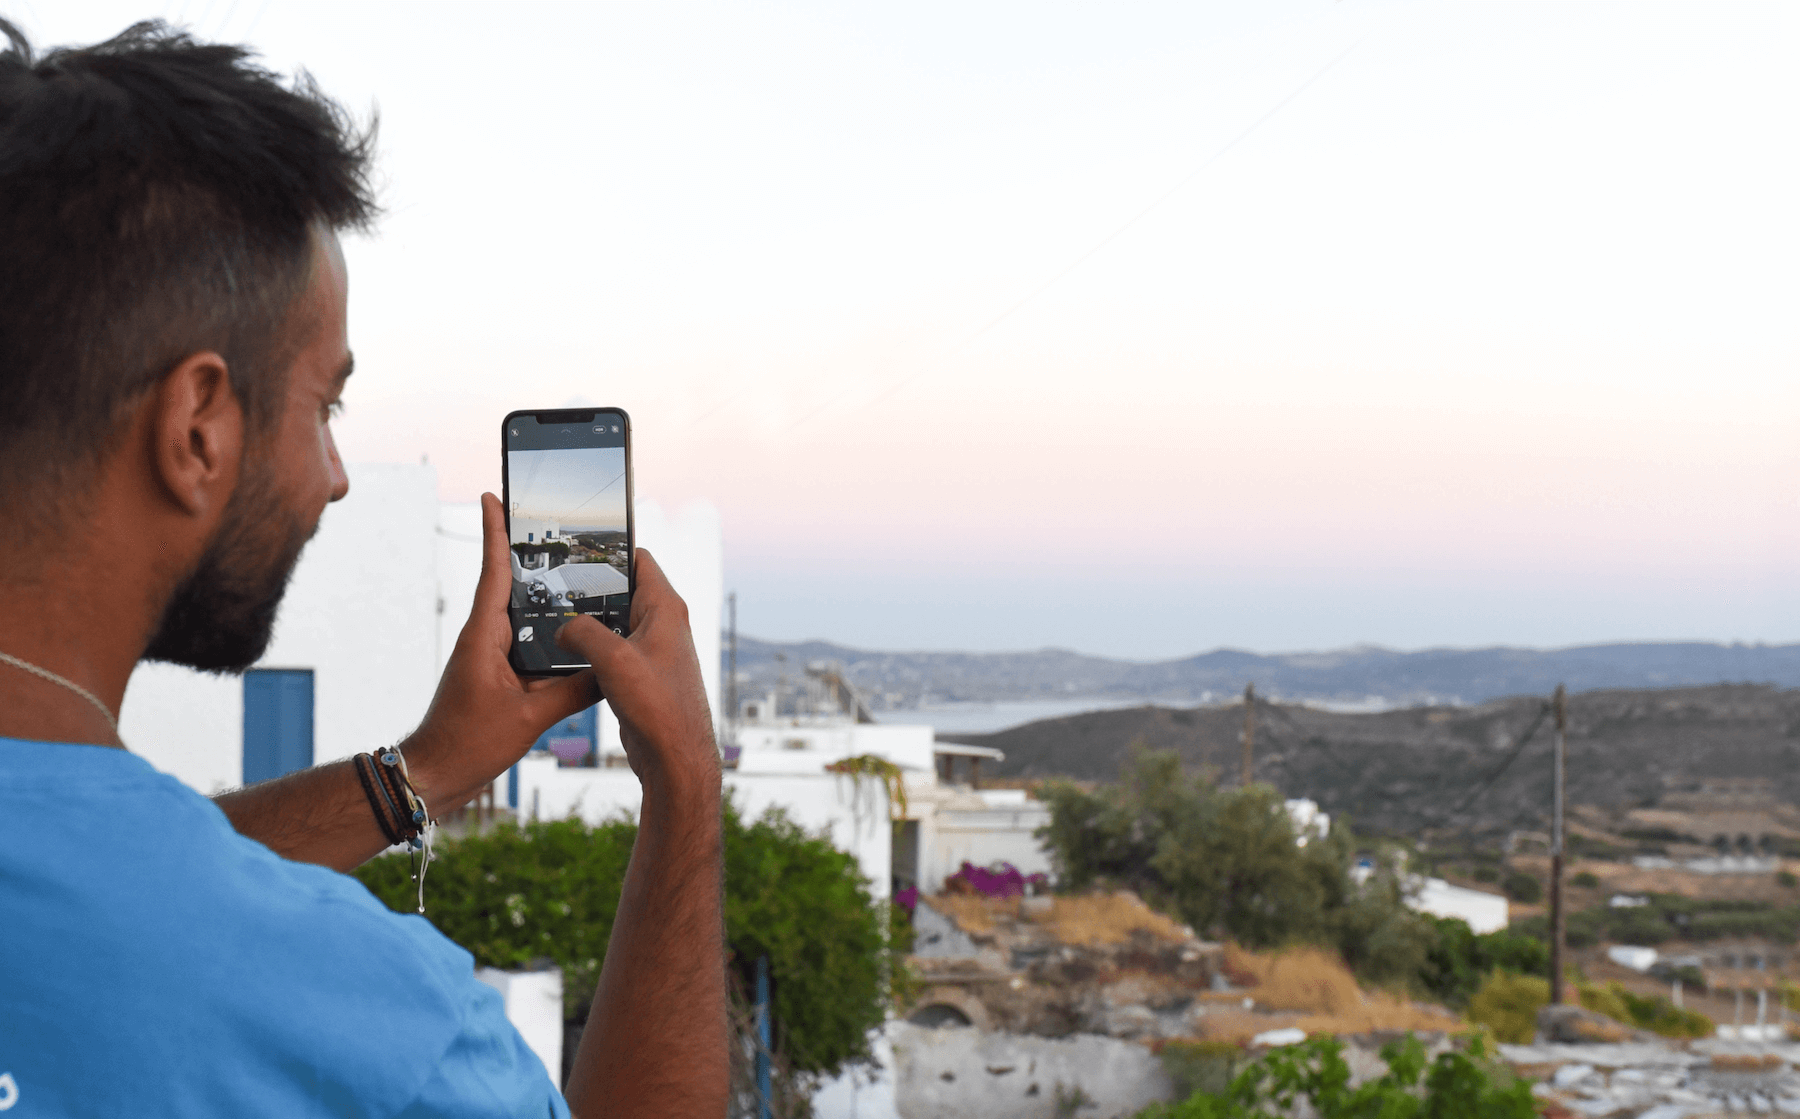 How to Easily Take Better Photos with my iPhone